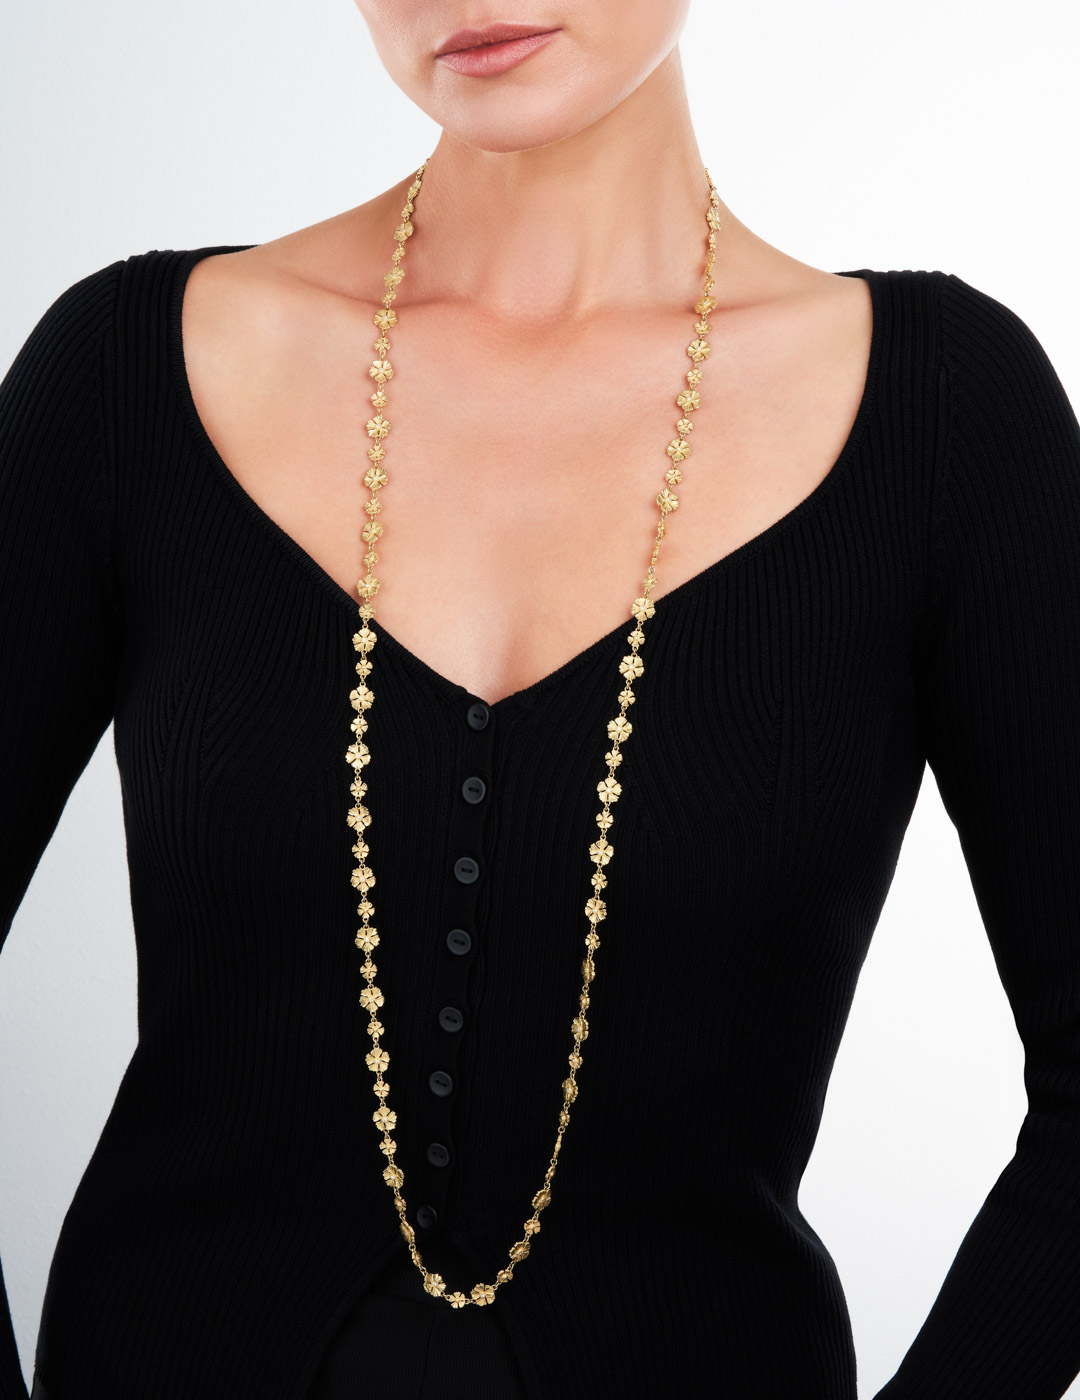 mish_necklaces_StrawFlwr-Classic 42-NK-2